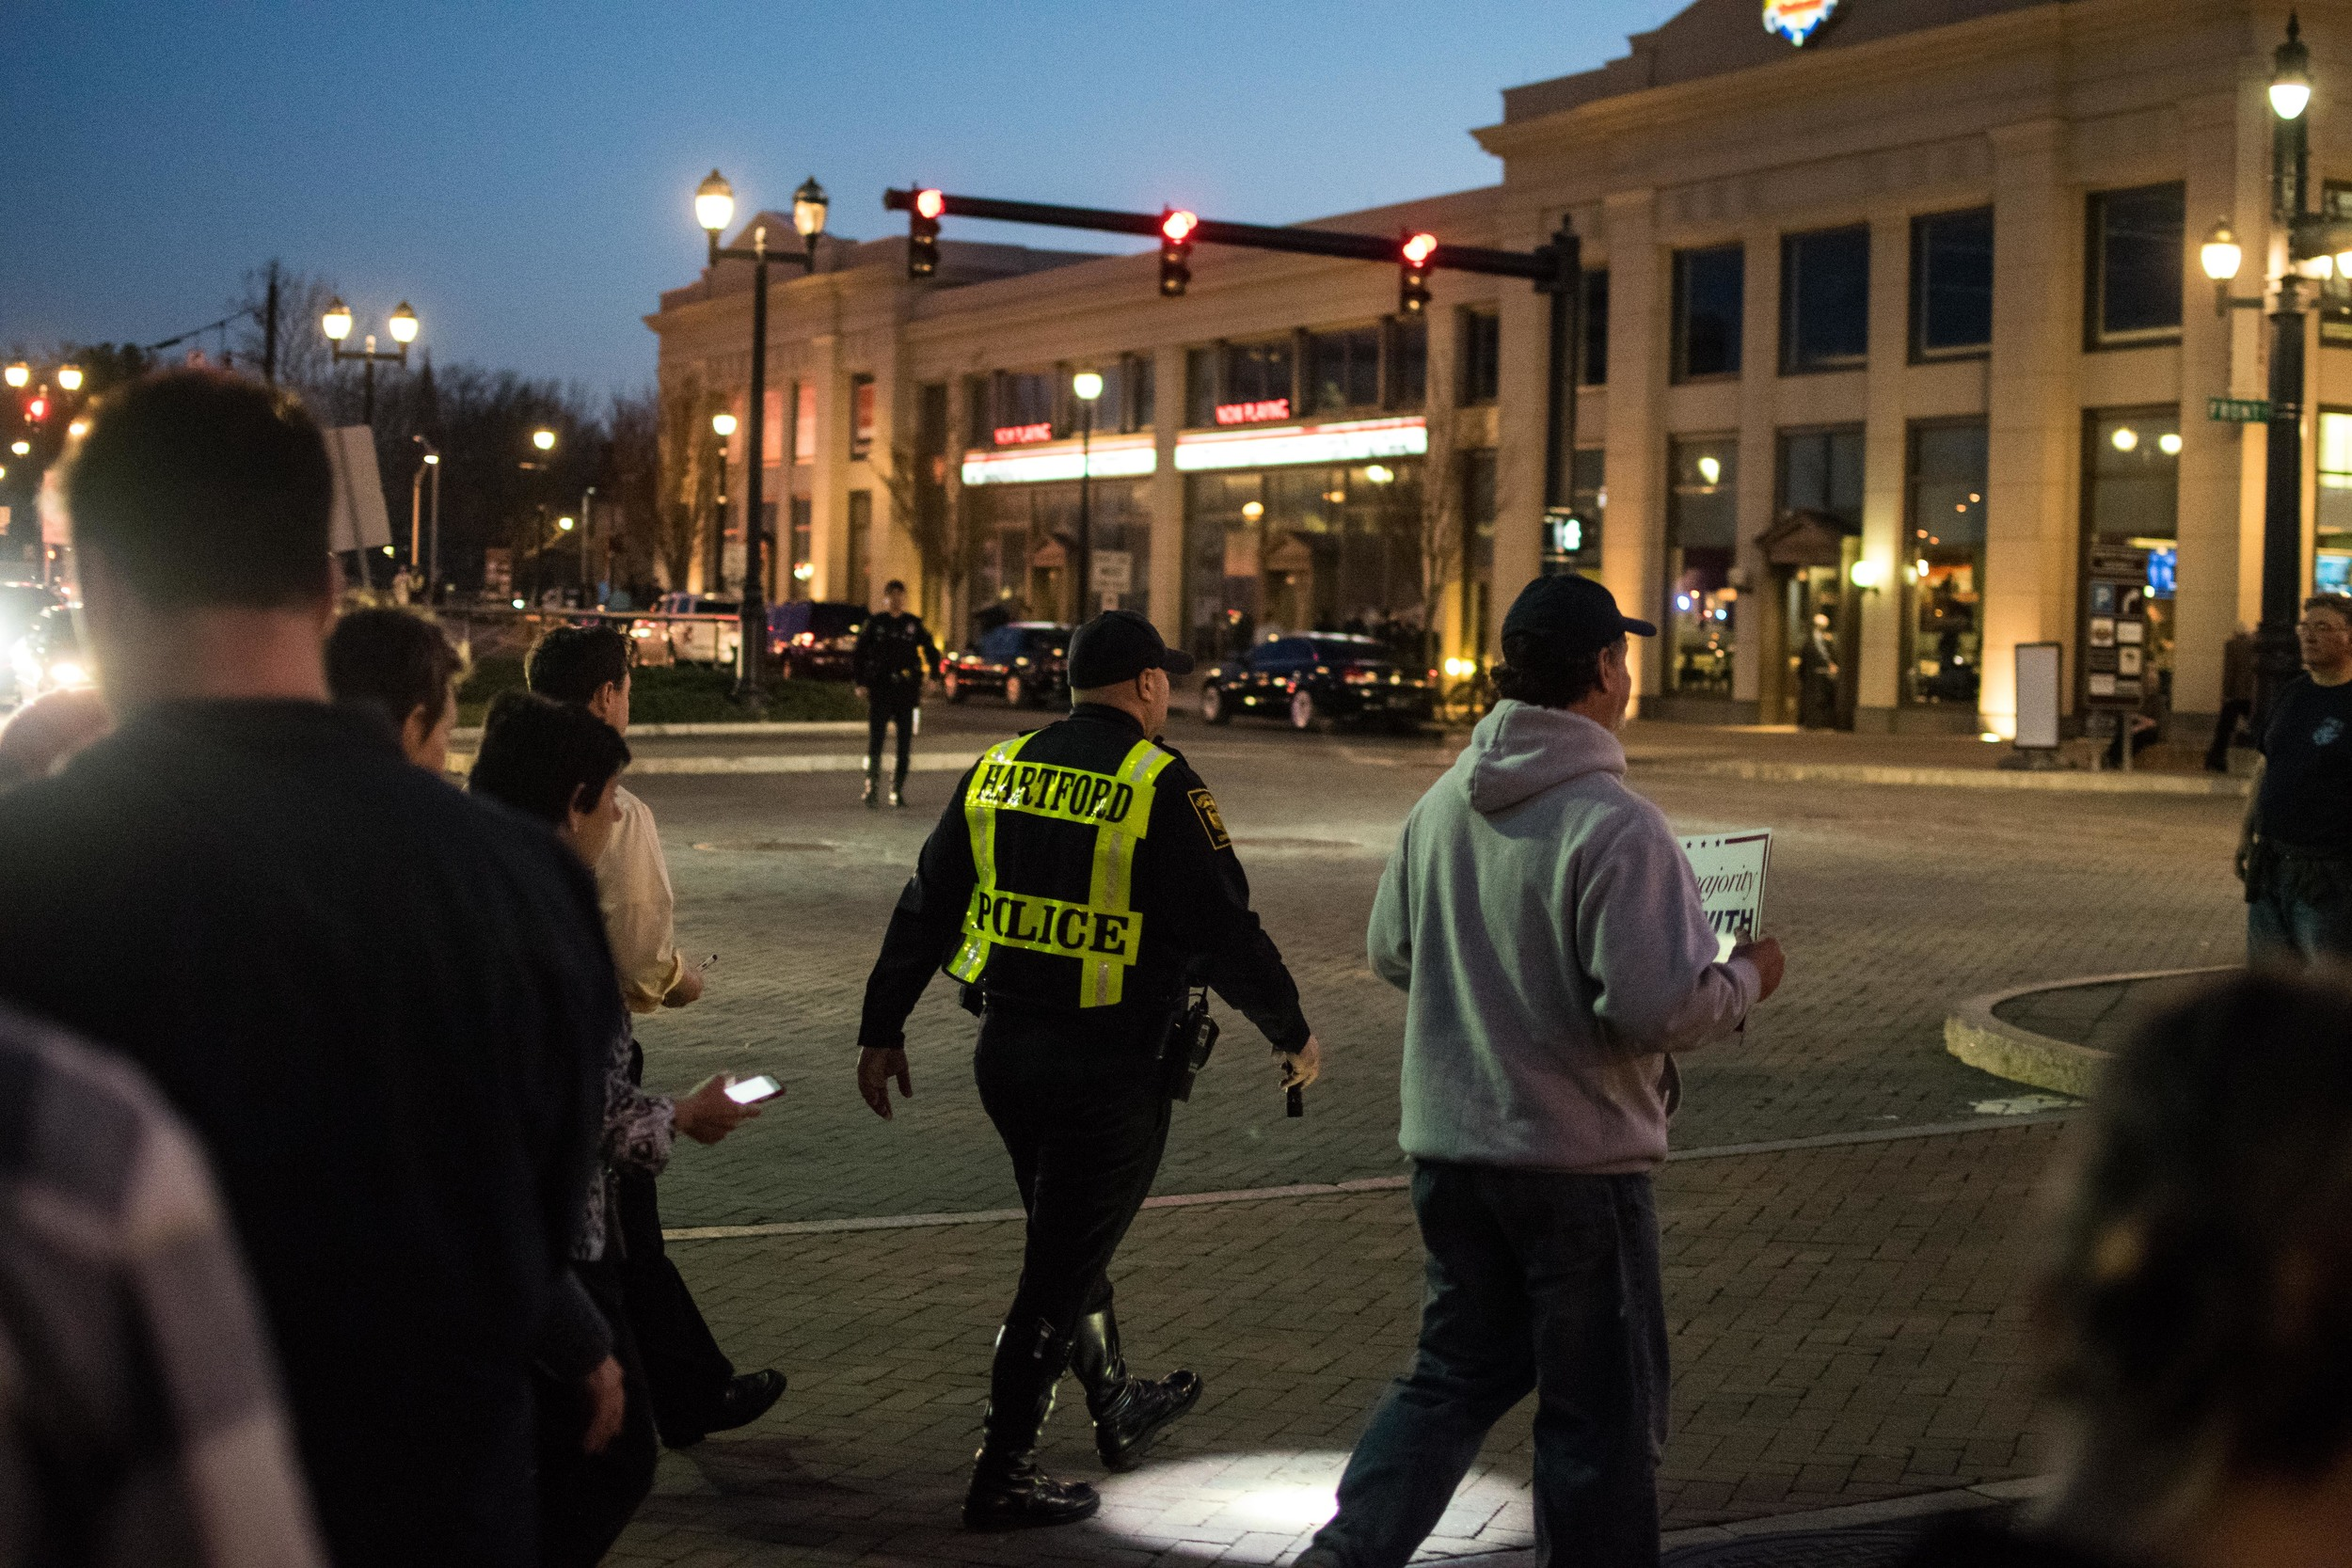 A police officer guides a large crowd across a busy street.